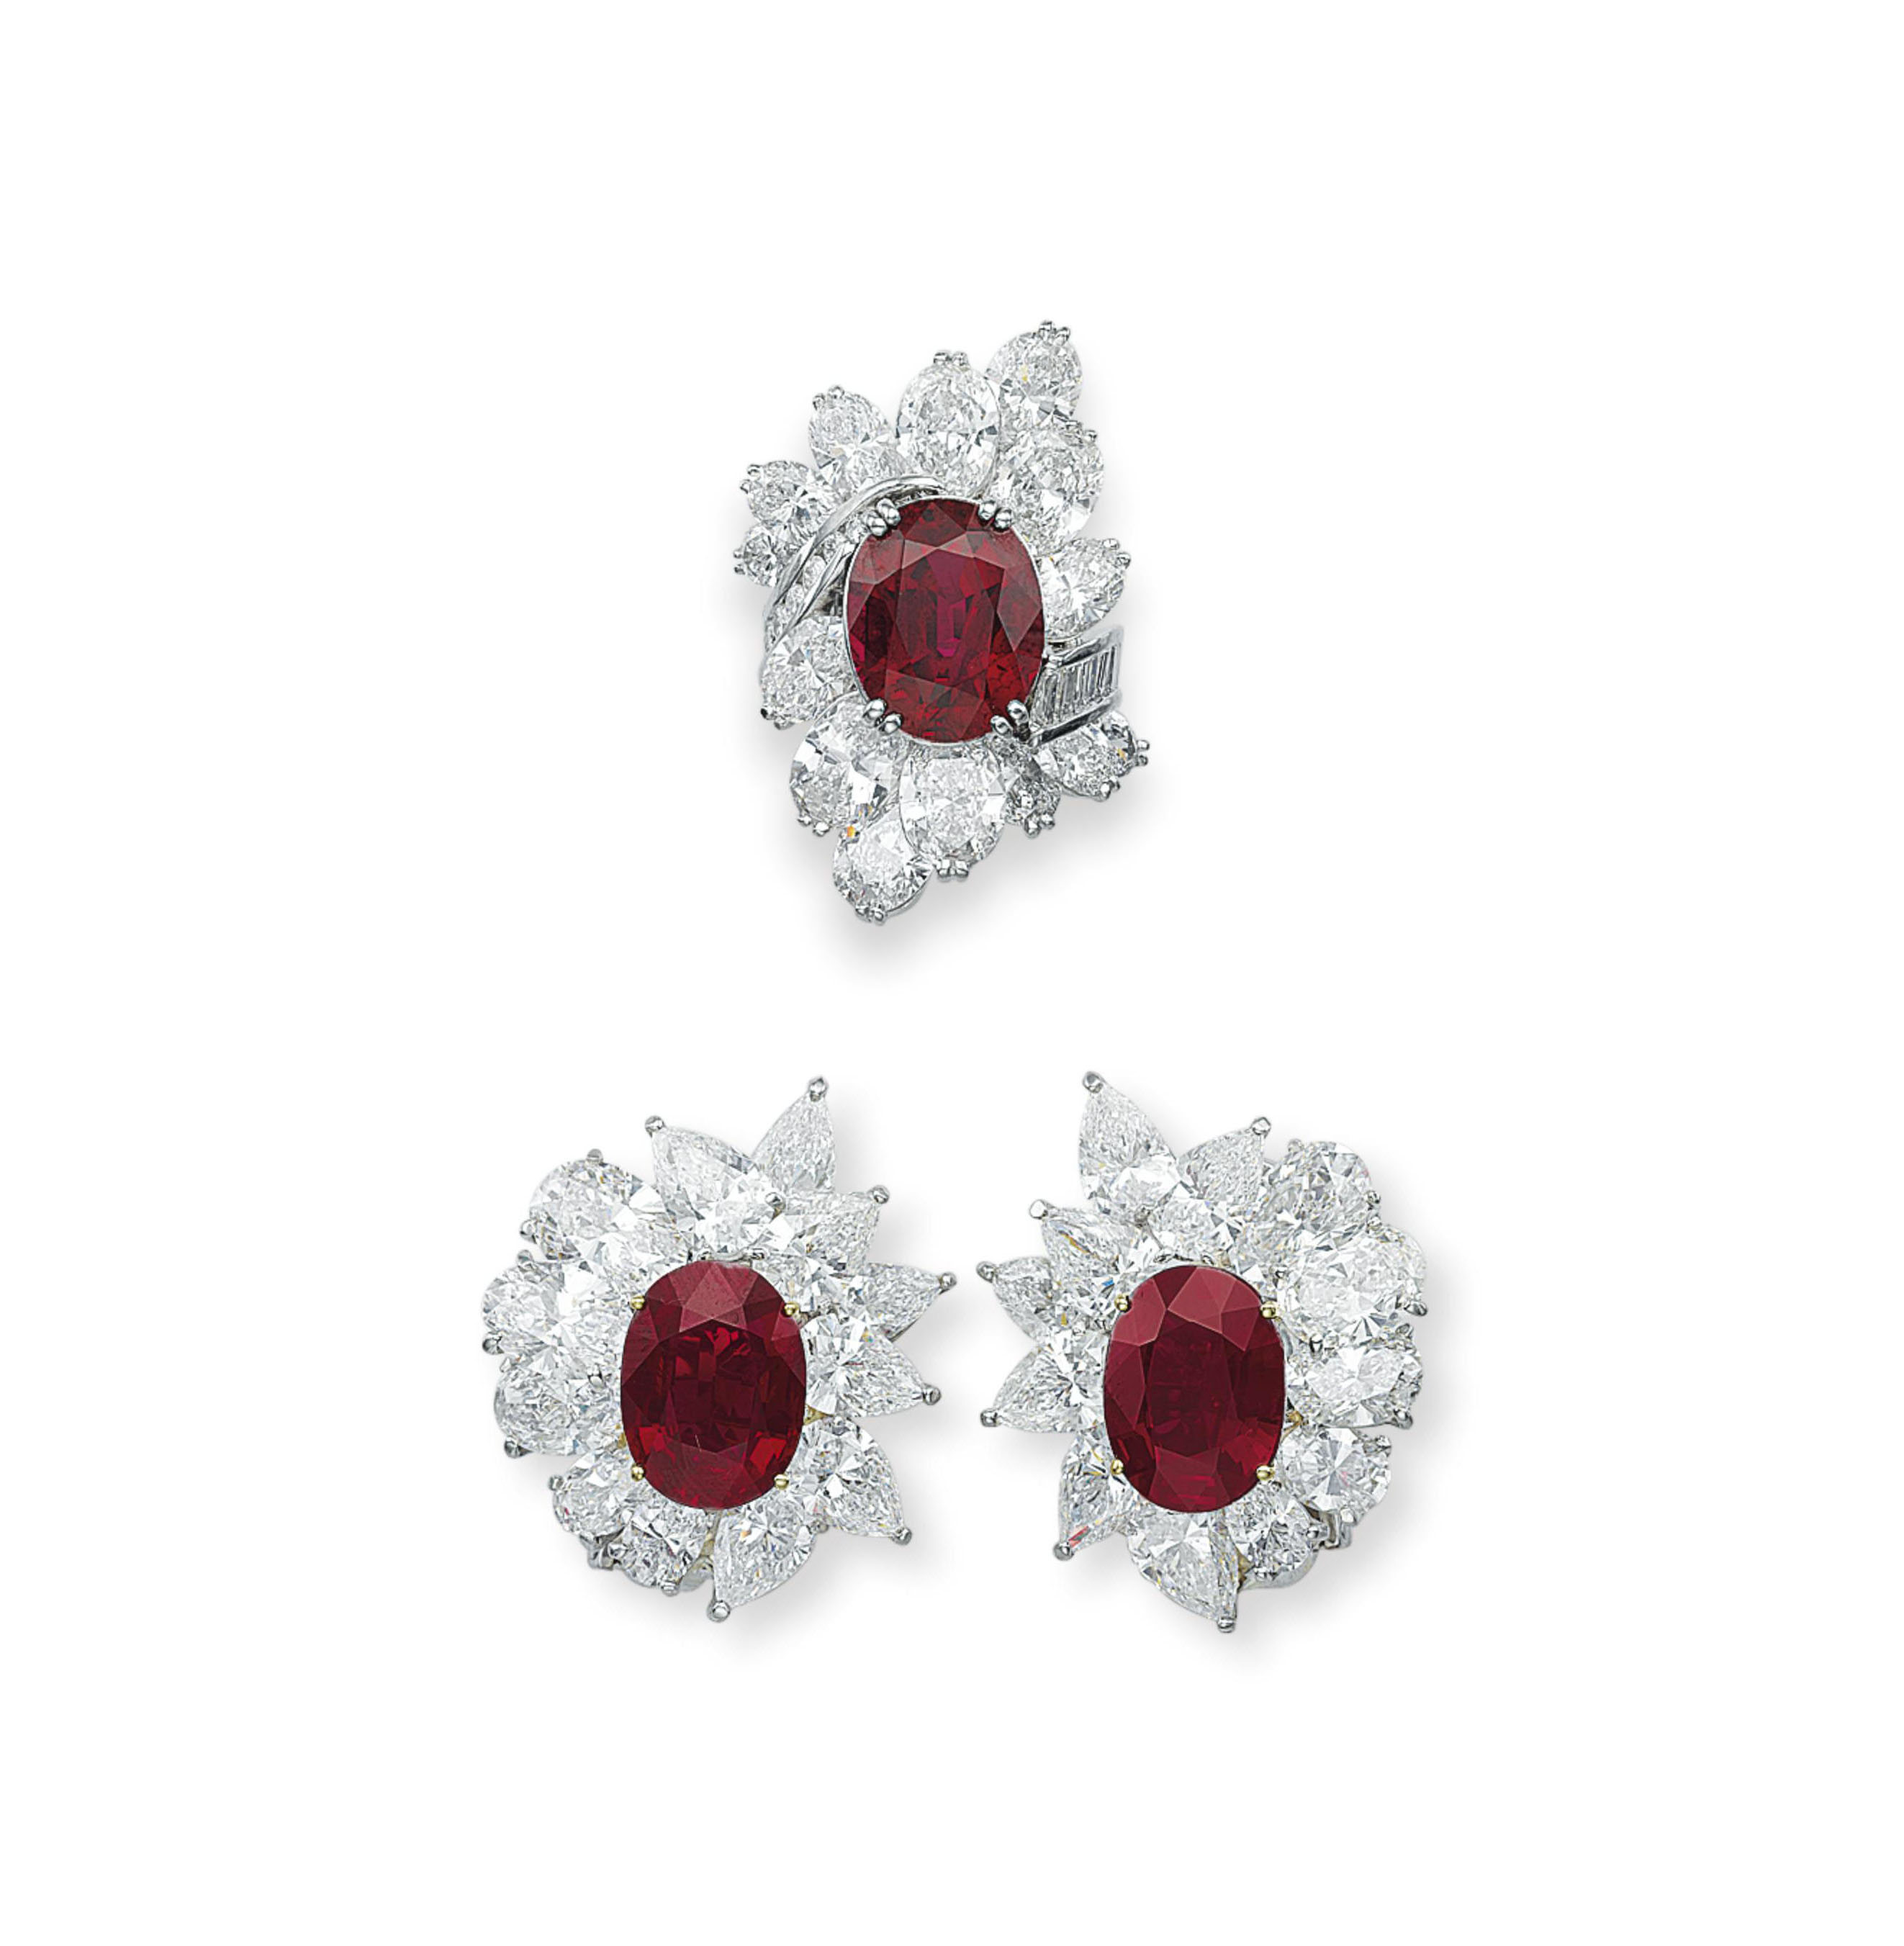 A SET OF RUBY AND DIAMOND JEWELRY, BY BLACK, STARR & FROST